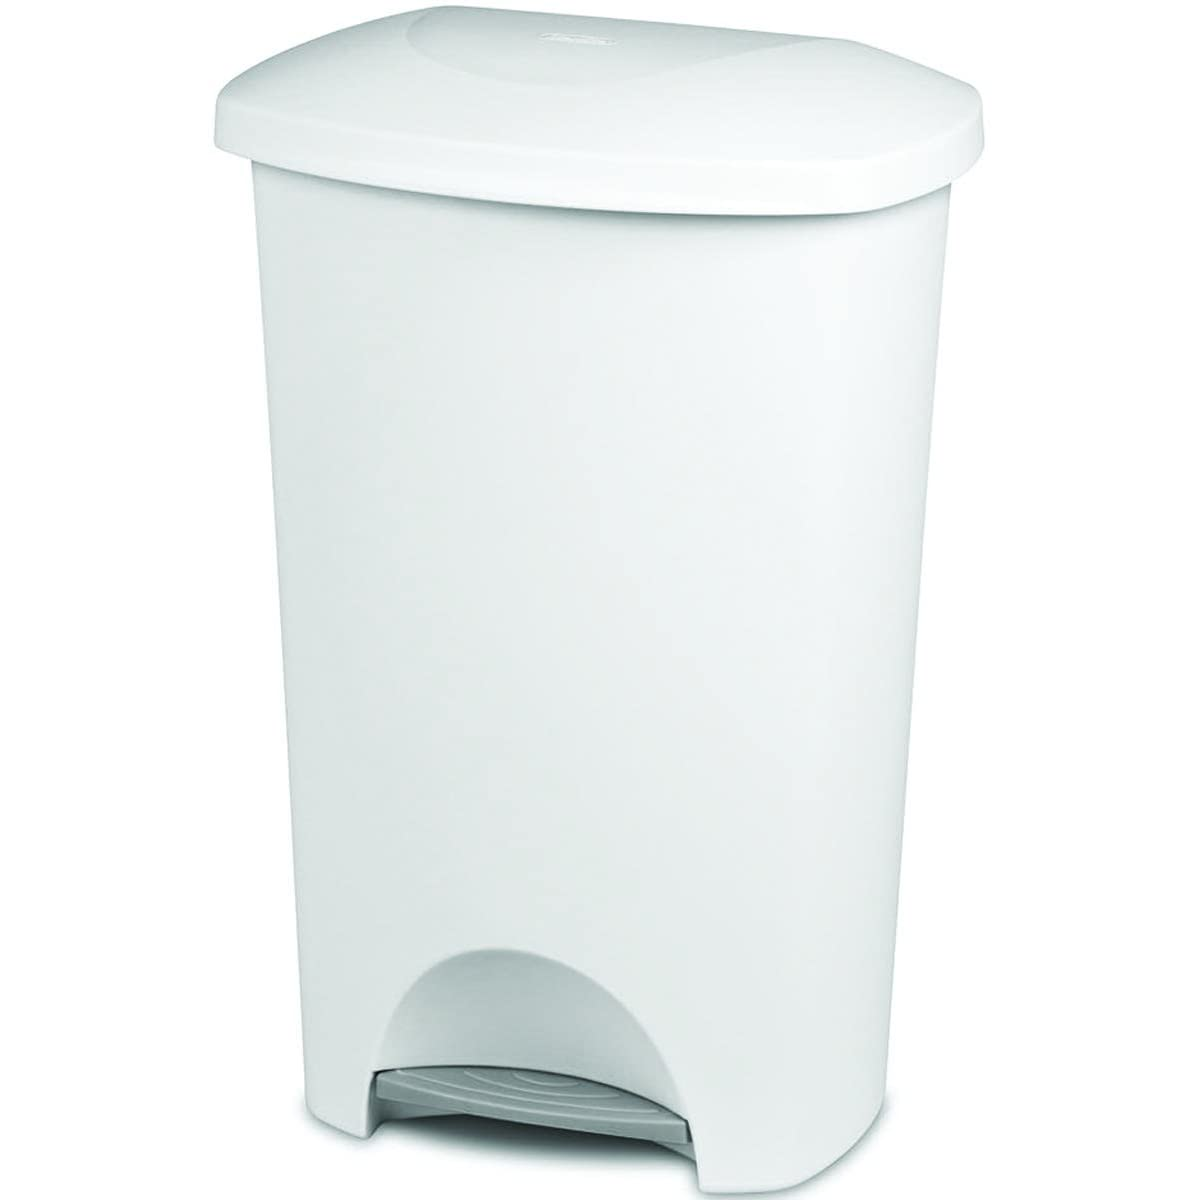 Sterilite Wastebasket Step On White 11 Gal Review